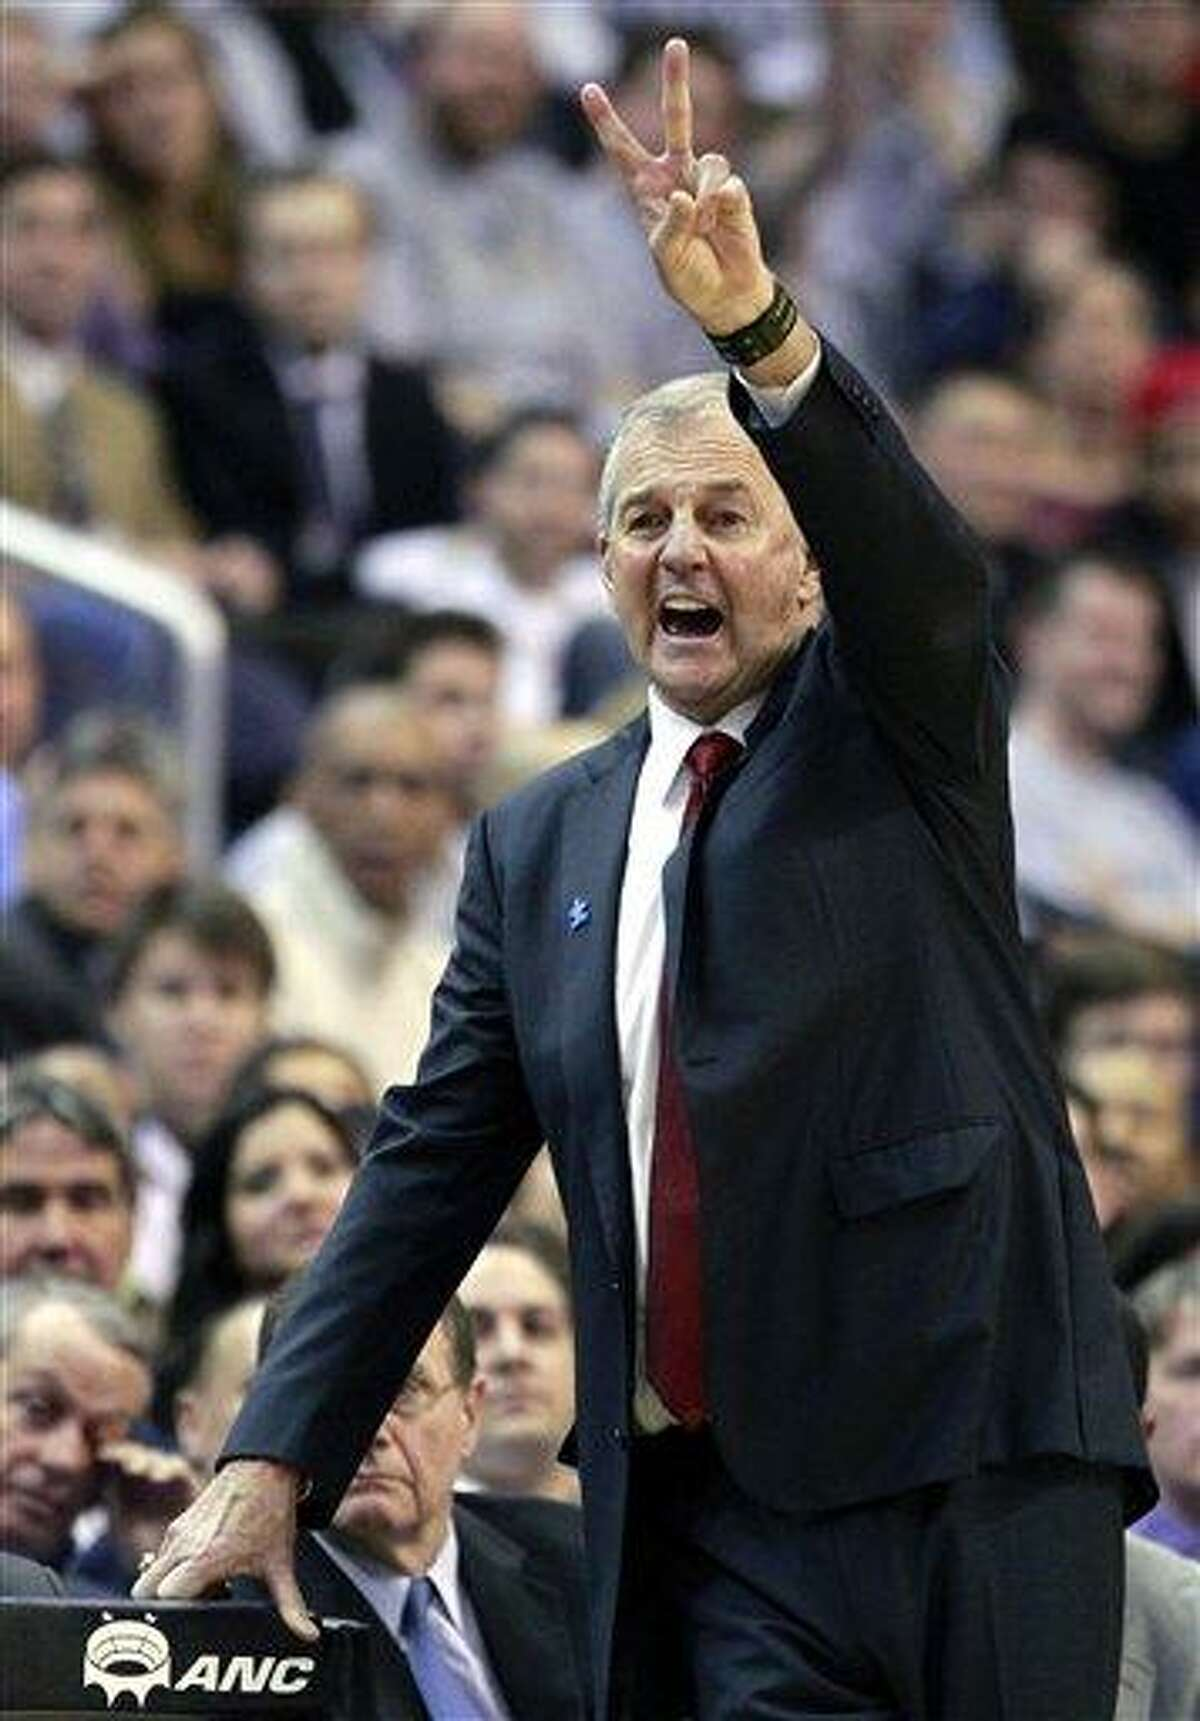 Connecticut head coach Jim Calhoun directs his team during the second half of an NCAA college basketball game against Georgetown, Wednesday, Feb. 1, 2012, in Washington. Georgetown won 58-44. (AP Photo/Haraz Ghanbari)